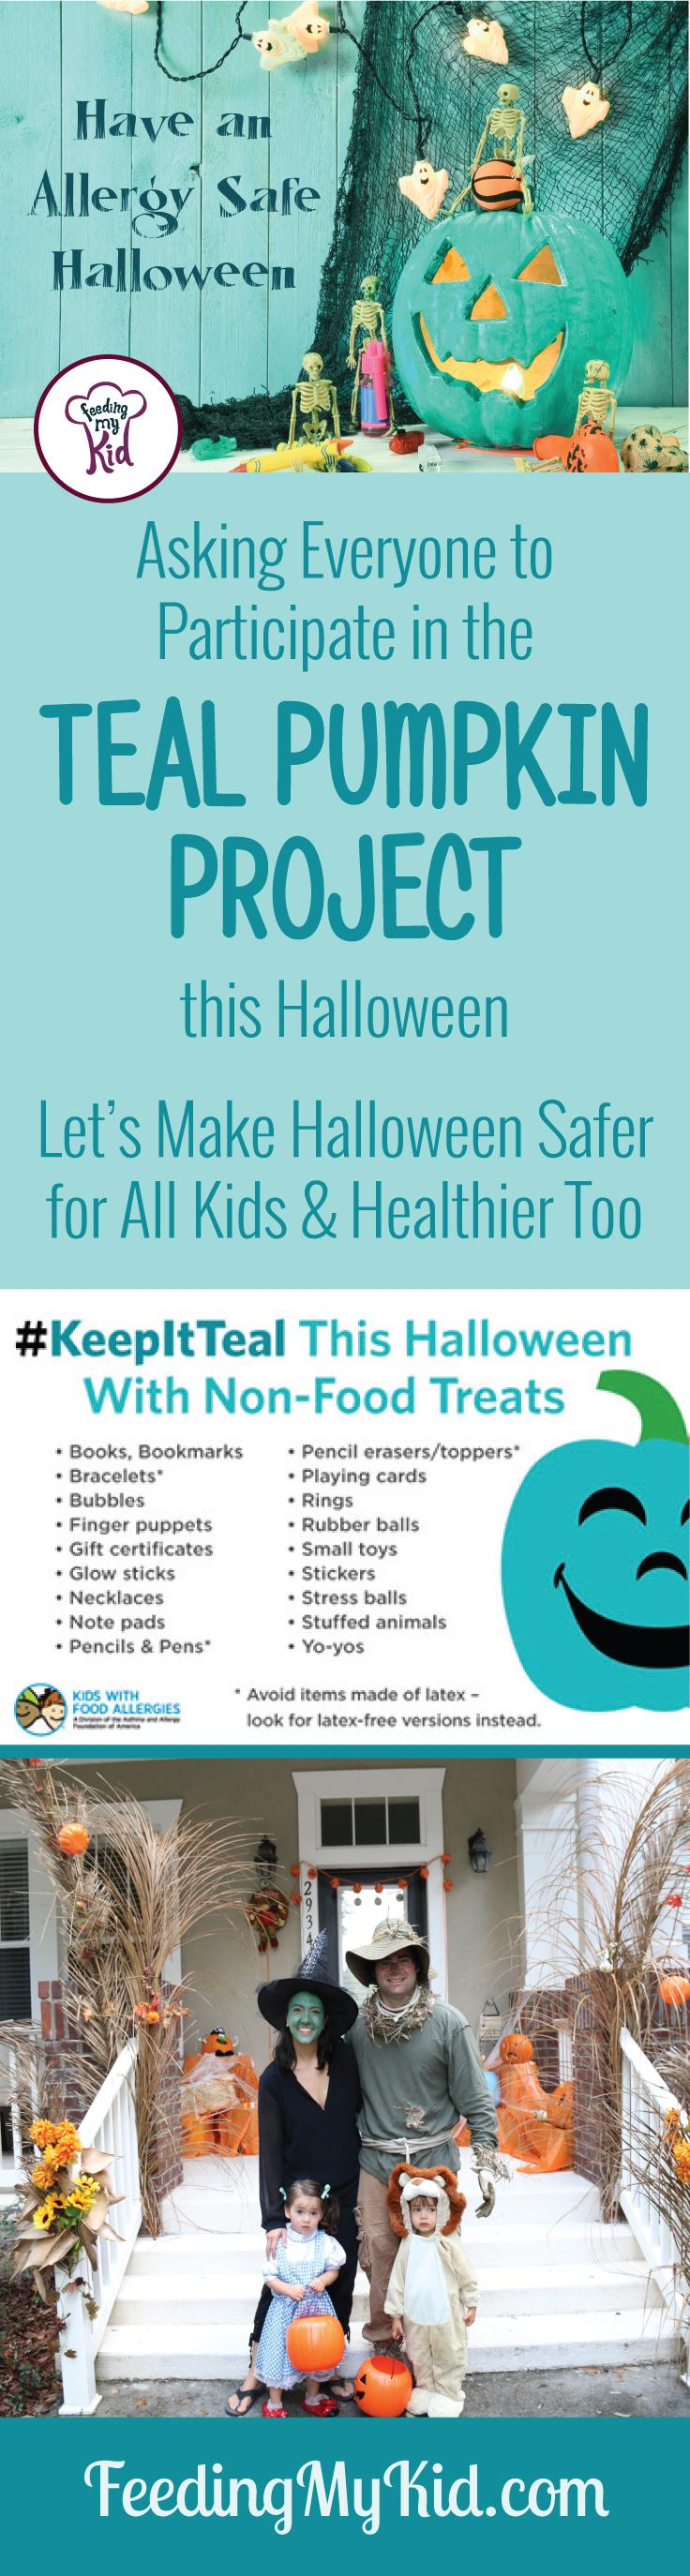 Halloween treats for kids don't have to be candy. Change how your kids are trick or treating! Find out more about the Teal Pumpkin Project.